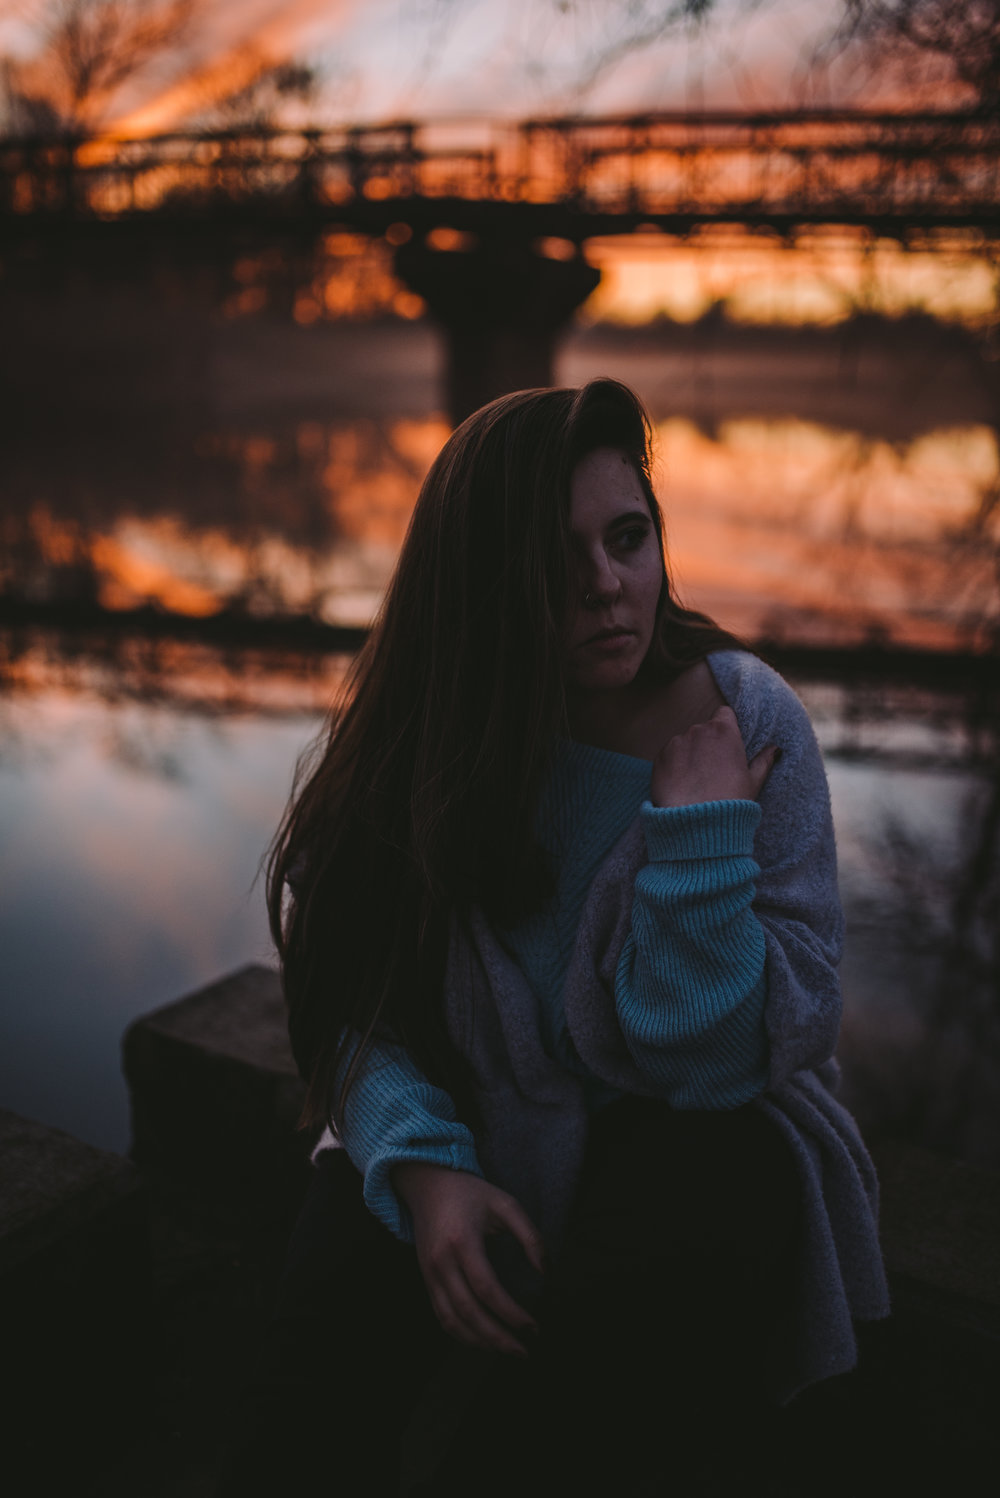 Sunset_IndianapolisIndiana_January2018_Senior Photography In Tempe_ArizonaSeniorPhotographer_SamanthaRosePhotography_final_-9.jpg